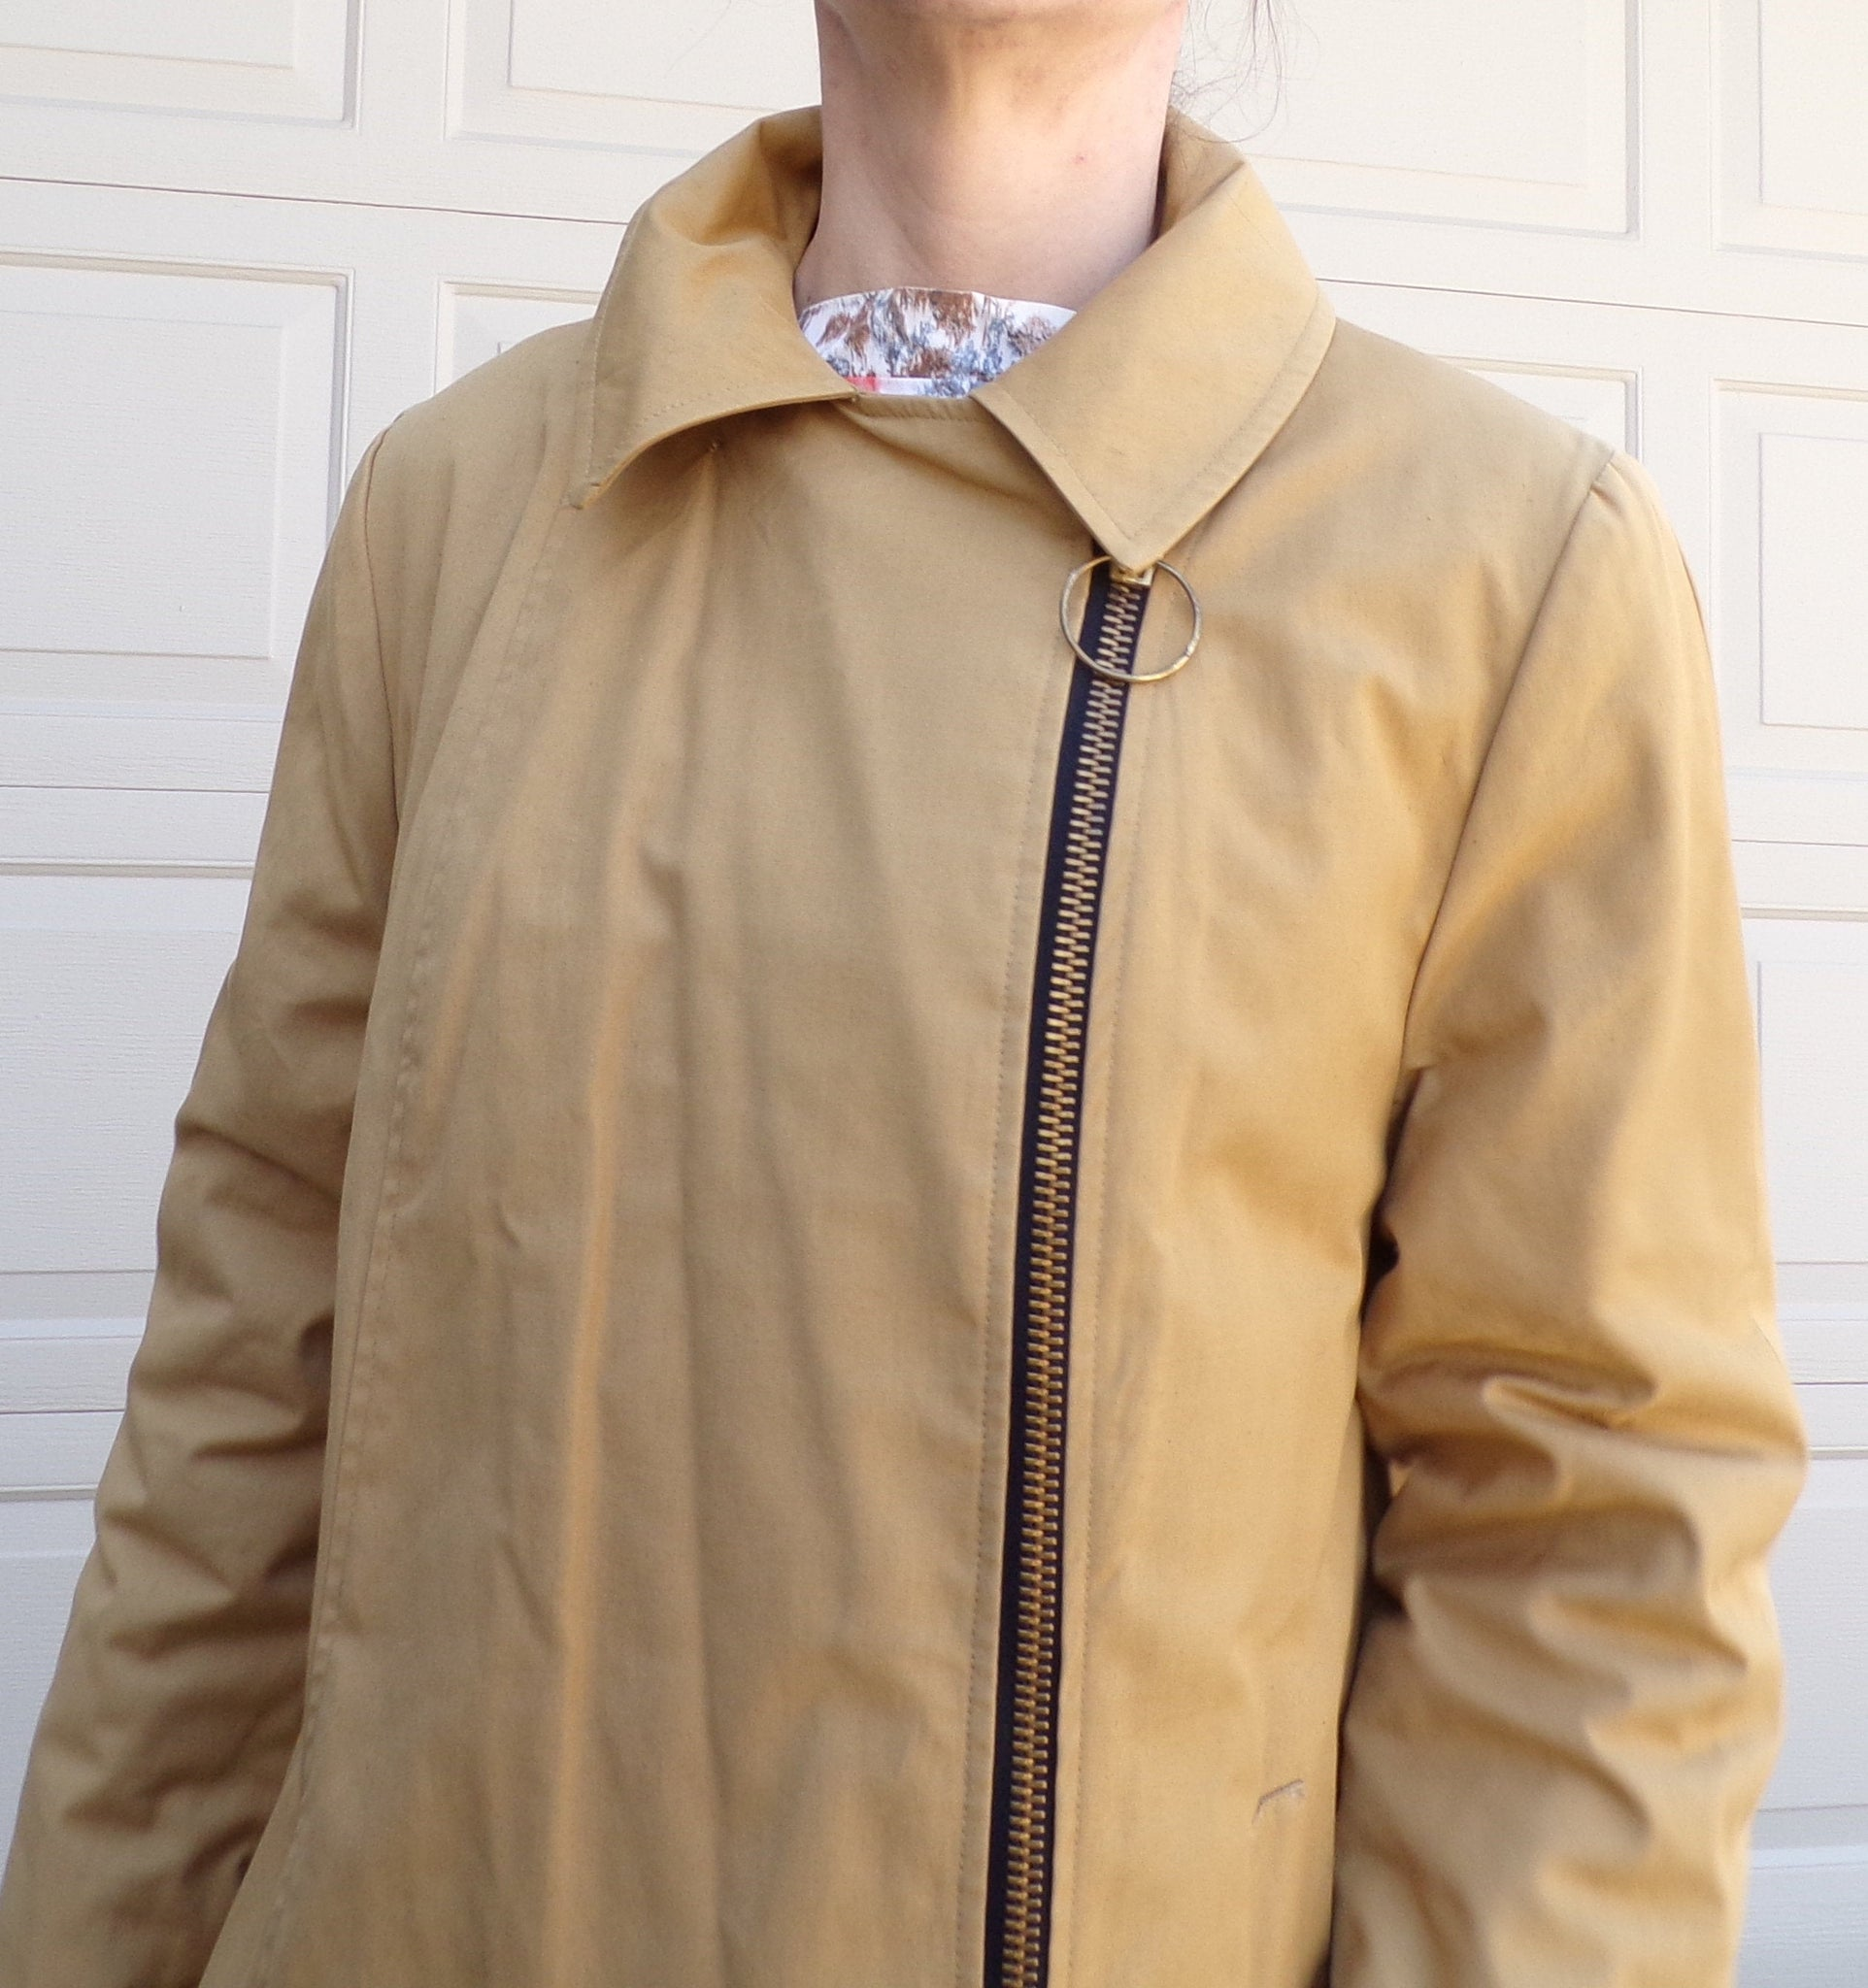 MOD TRENCH COAT asymmetric O-ring zip jacket vintage 60's S